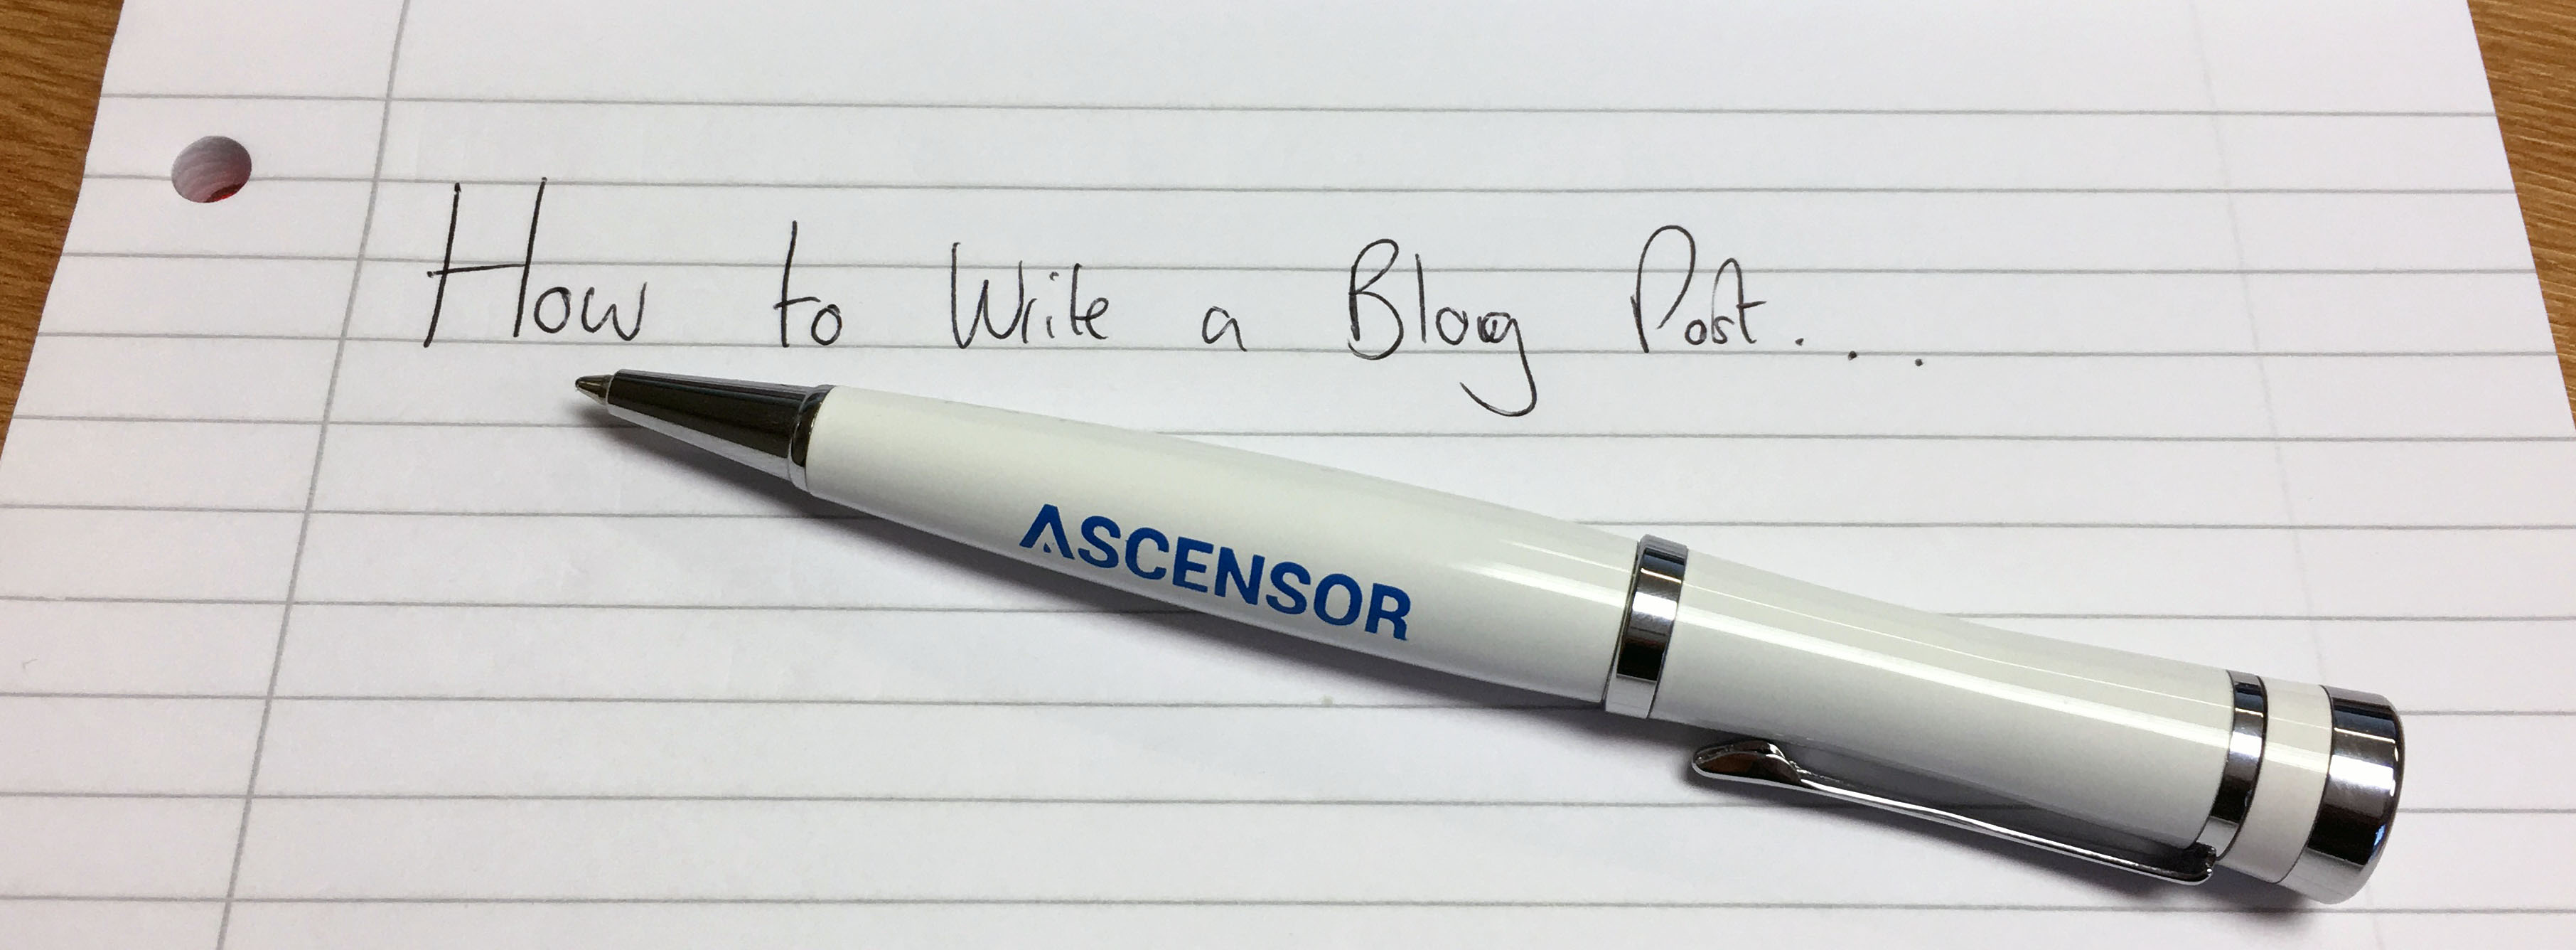 How to write a blog post written on paper with an Ascensor pen